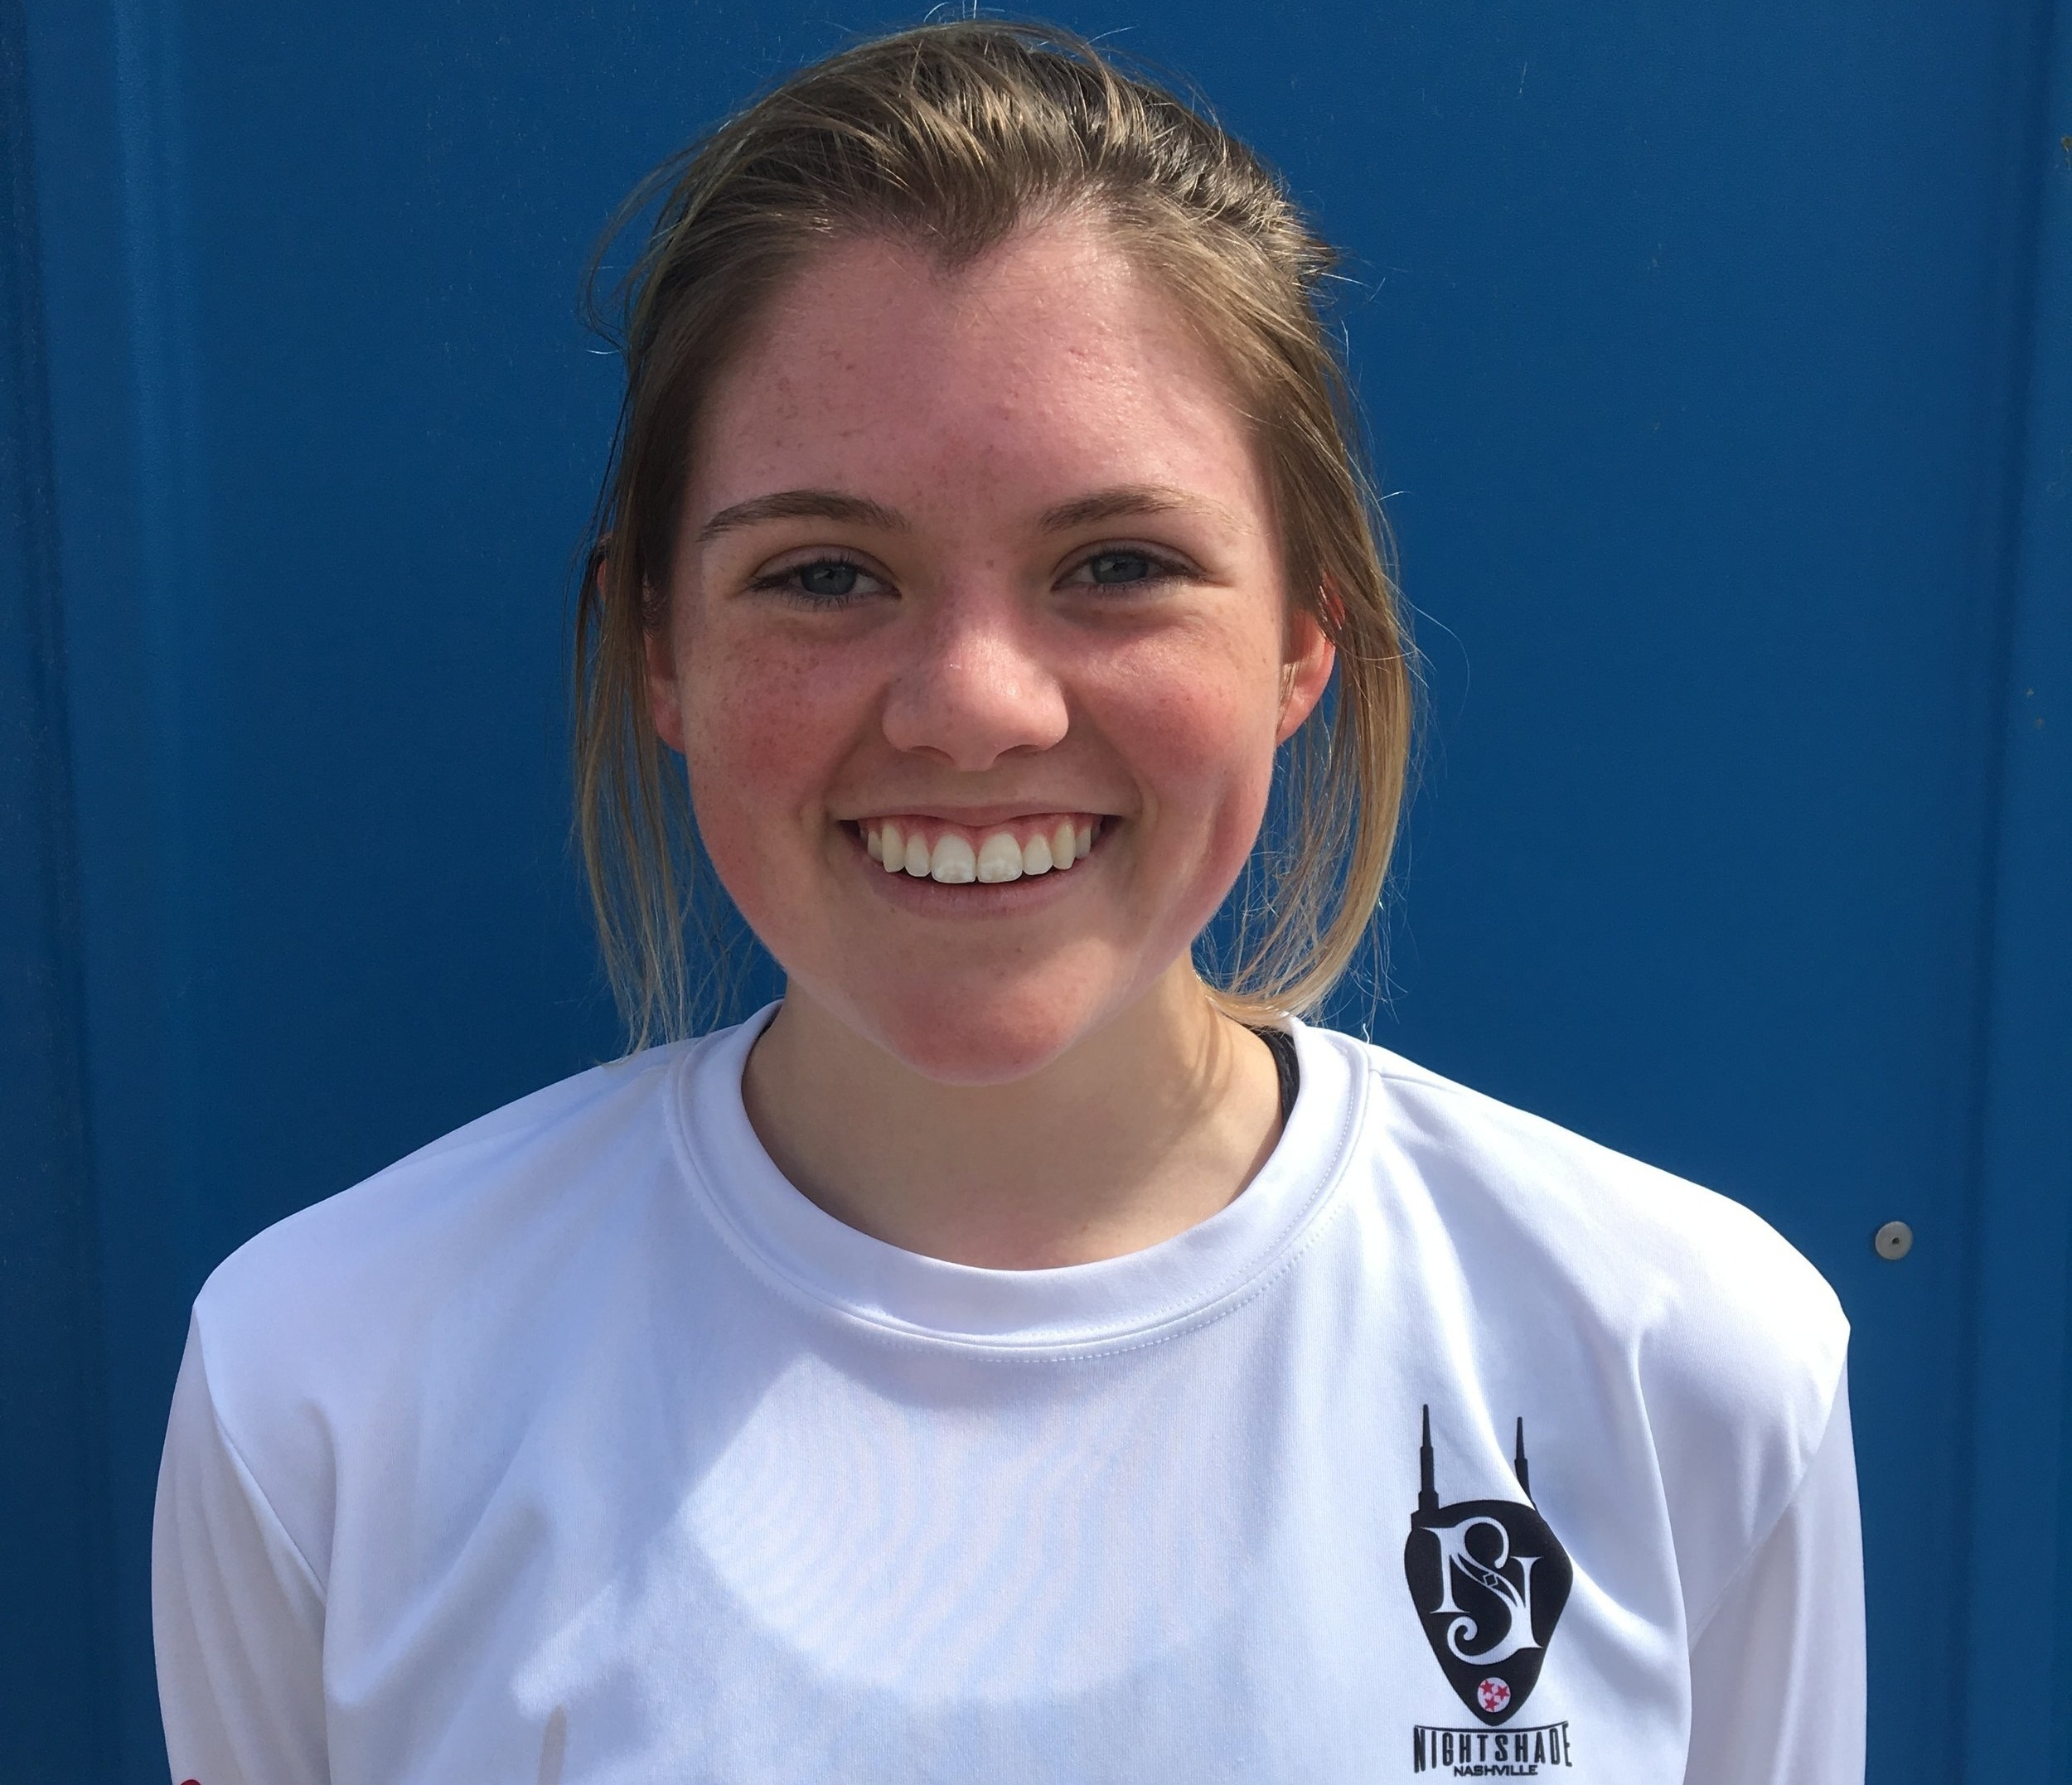 Nettie Stanfield   Nettie captained the high school Hornets for 3 years and the Unicorns for a single year, placing 9th at Nationals and 1st in state for girls teams that year. Nettie is currently a freshman student and player at Johnson University in Knoxville and studies English. Aside from playing ultimate, she enjoys hanging out with animals, writing, and watching ultimate highlight reels.